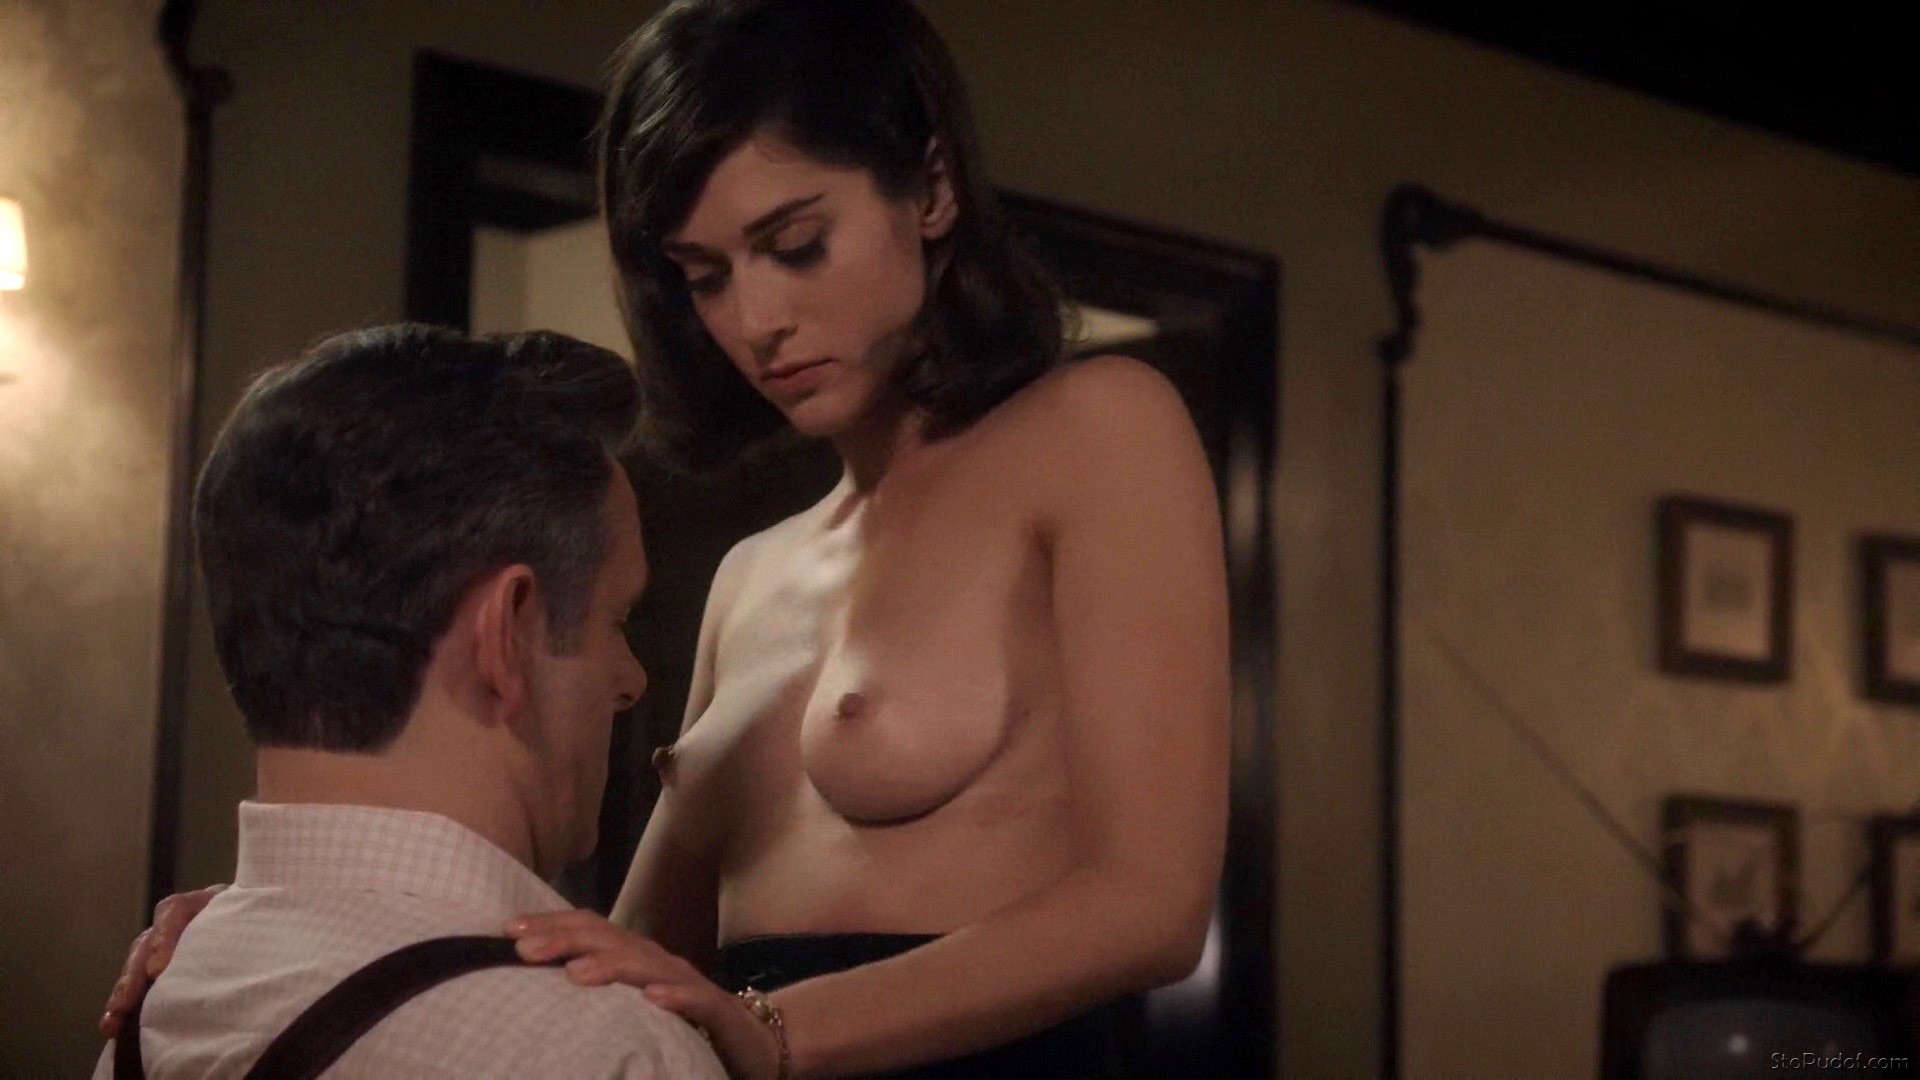 Lizzy caplan nude, topless pictures, playboy photos, sex scene uncensored